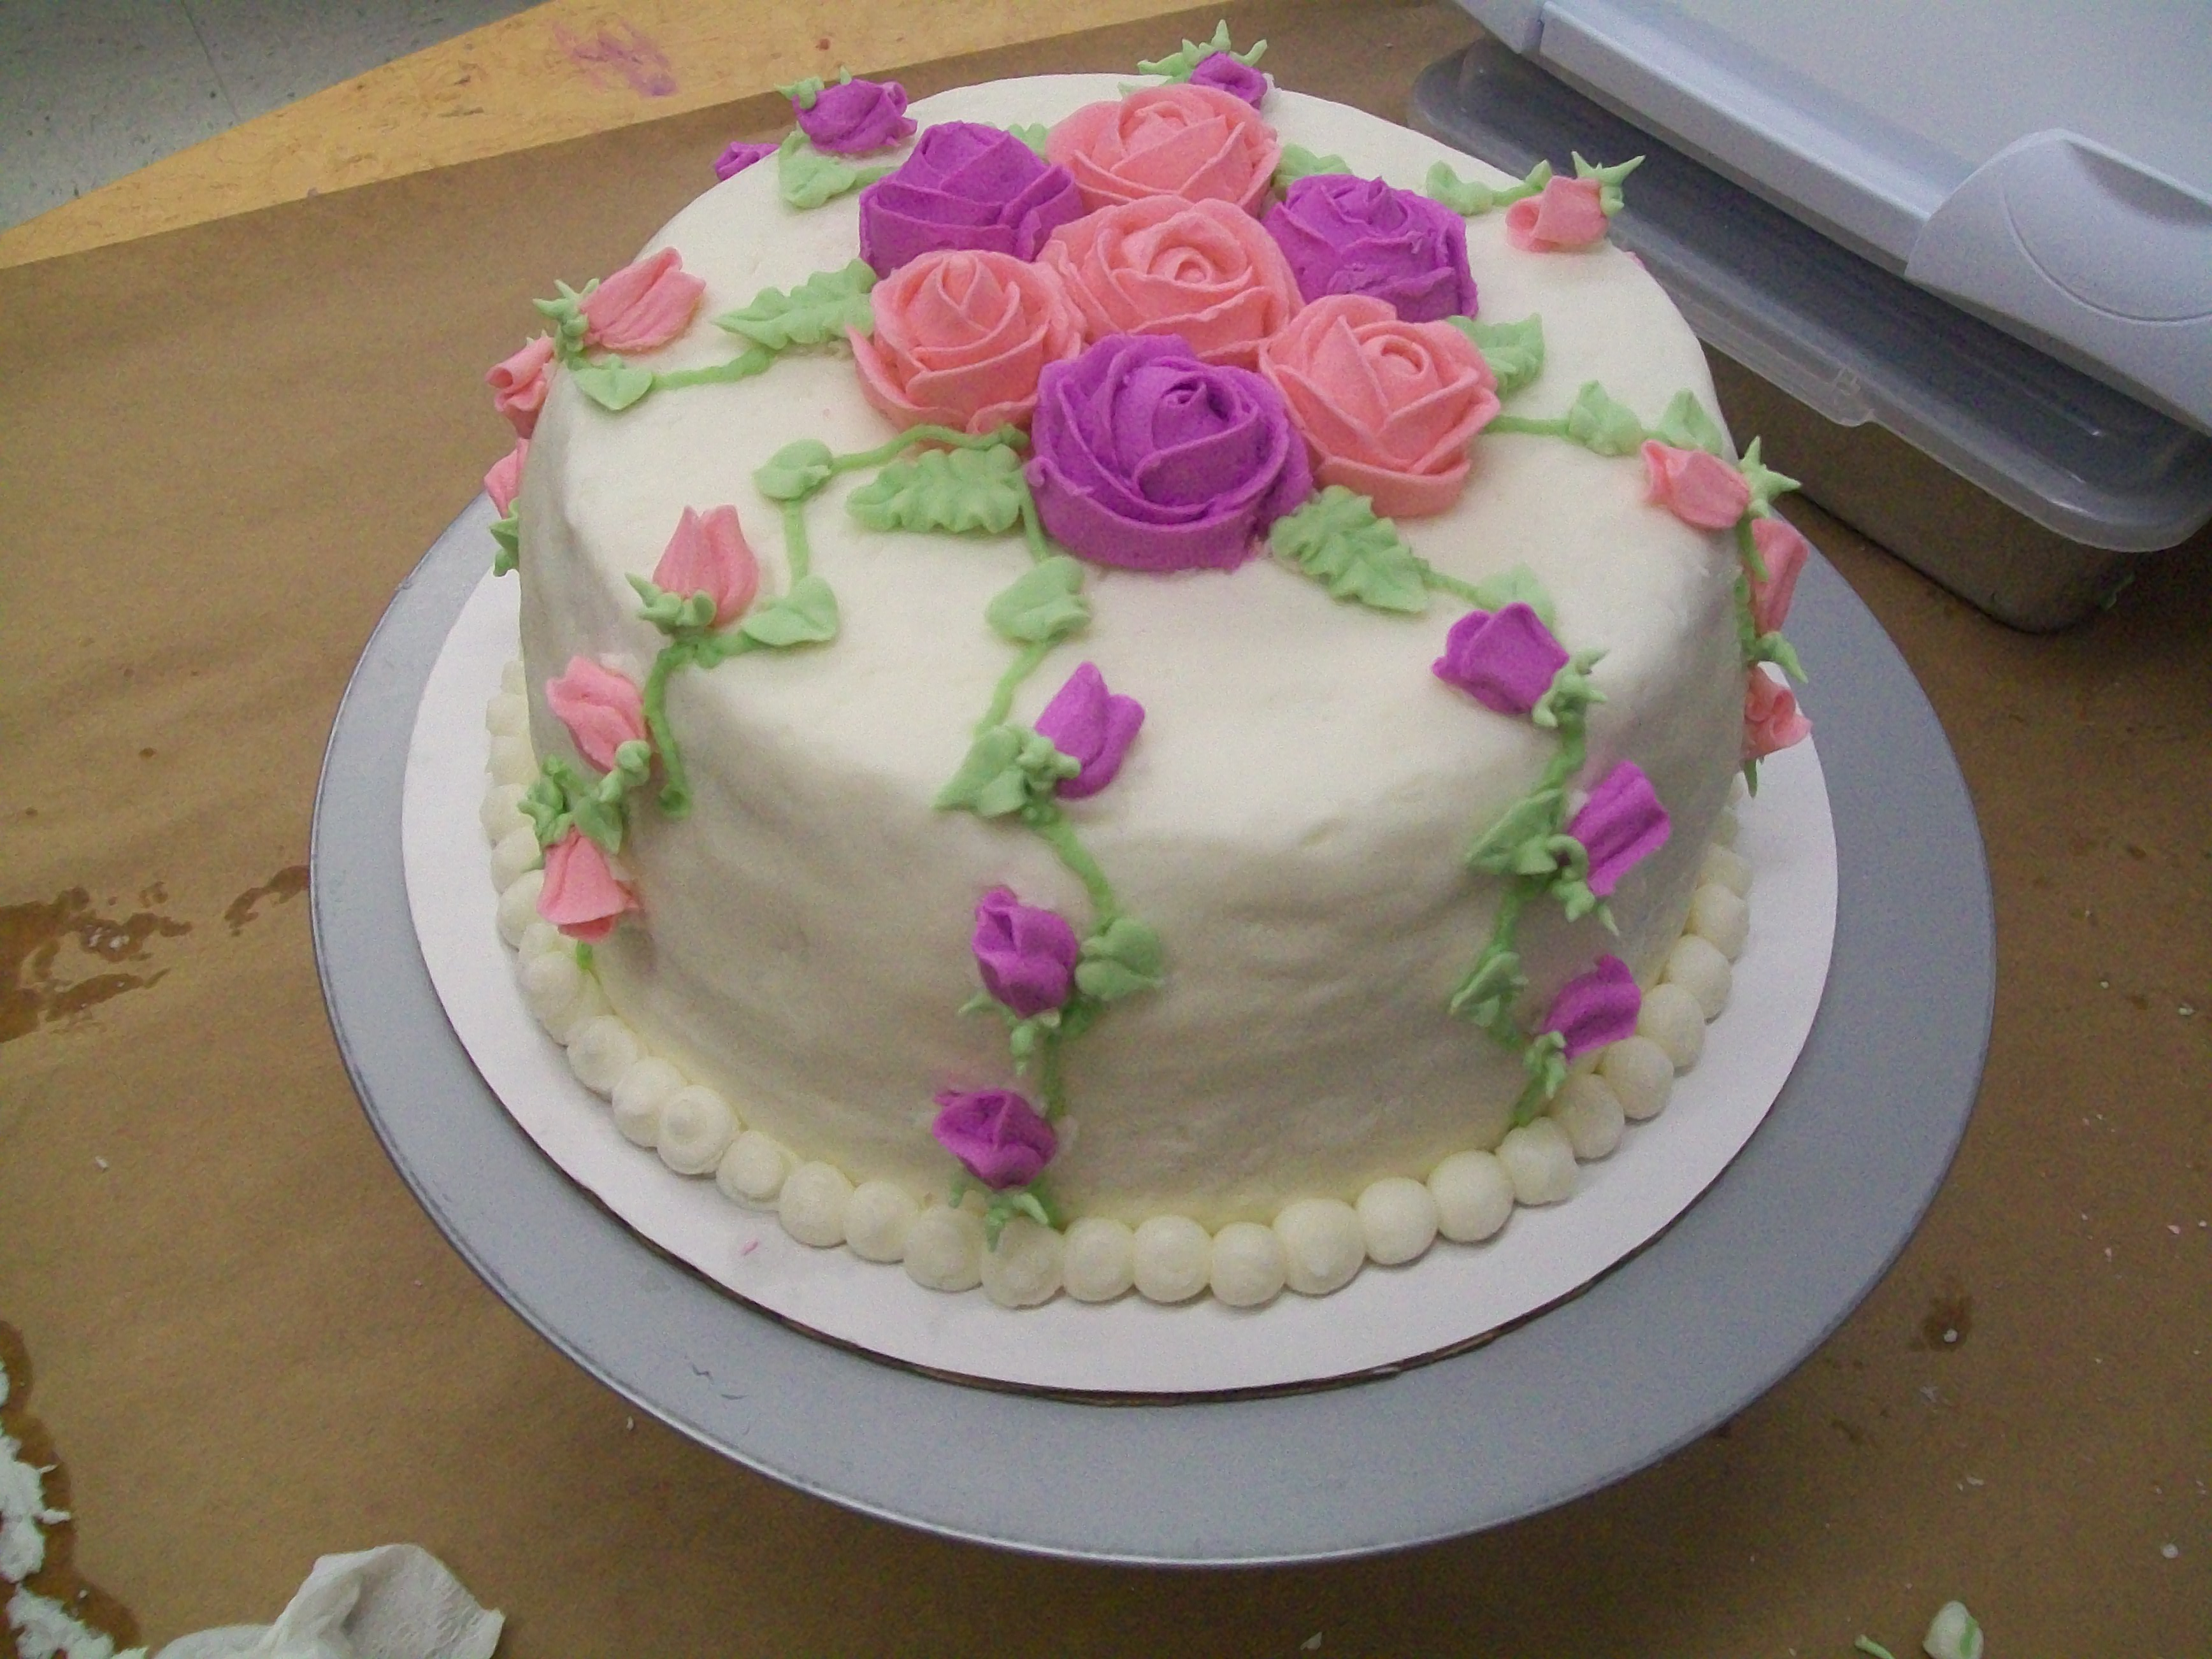 Rose Design On Cake : My Rose Cake Creation {Wordless Wednesday & Linky} - My 3 ...